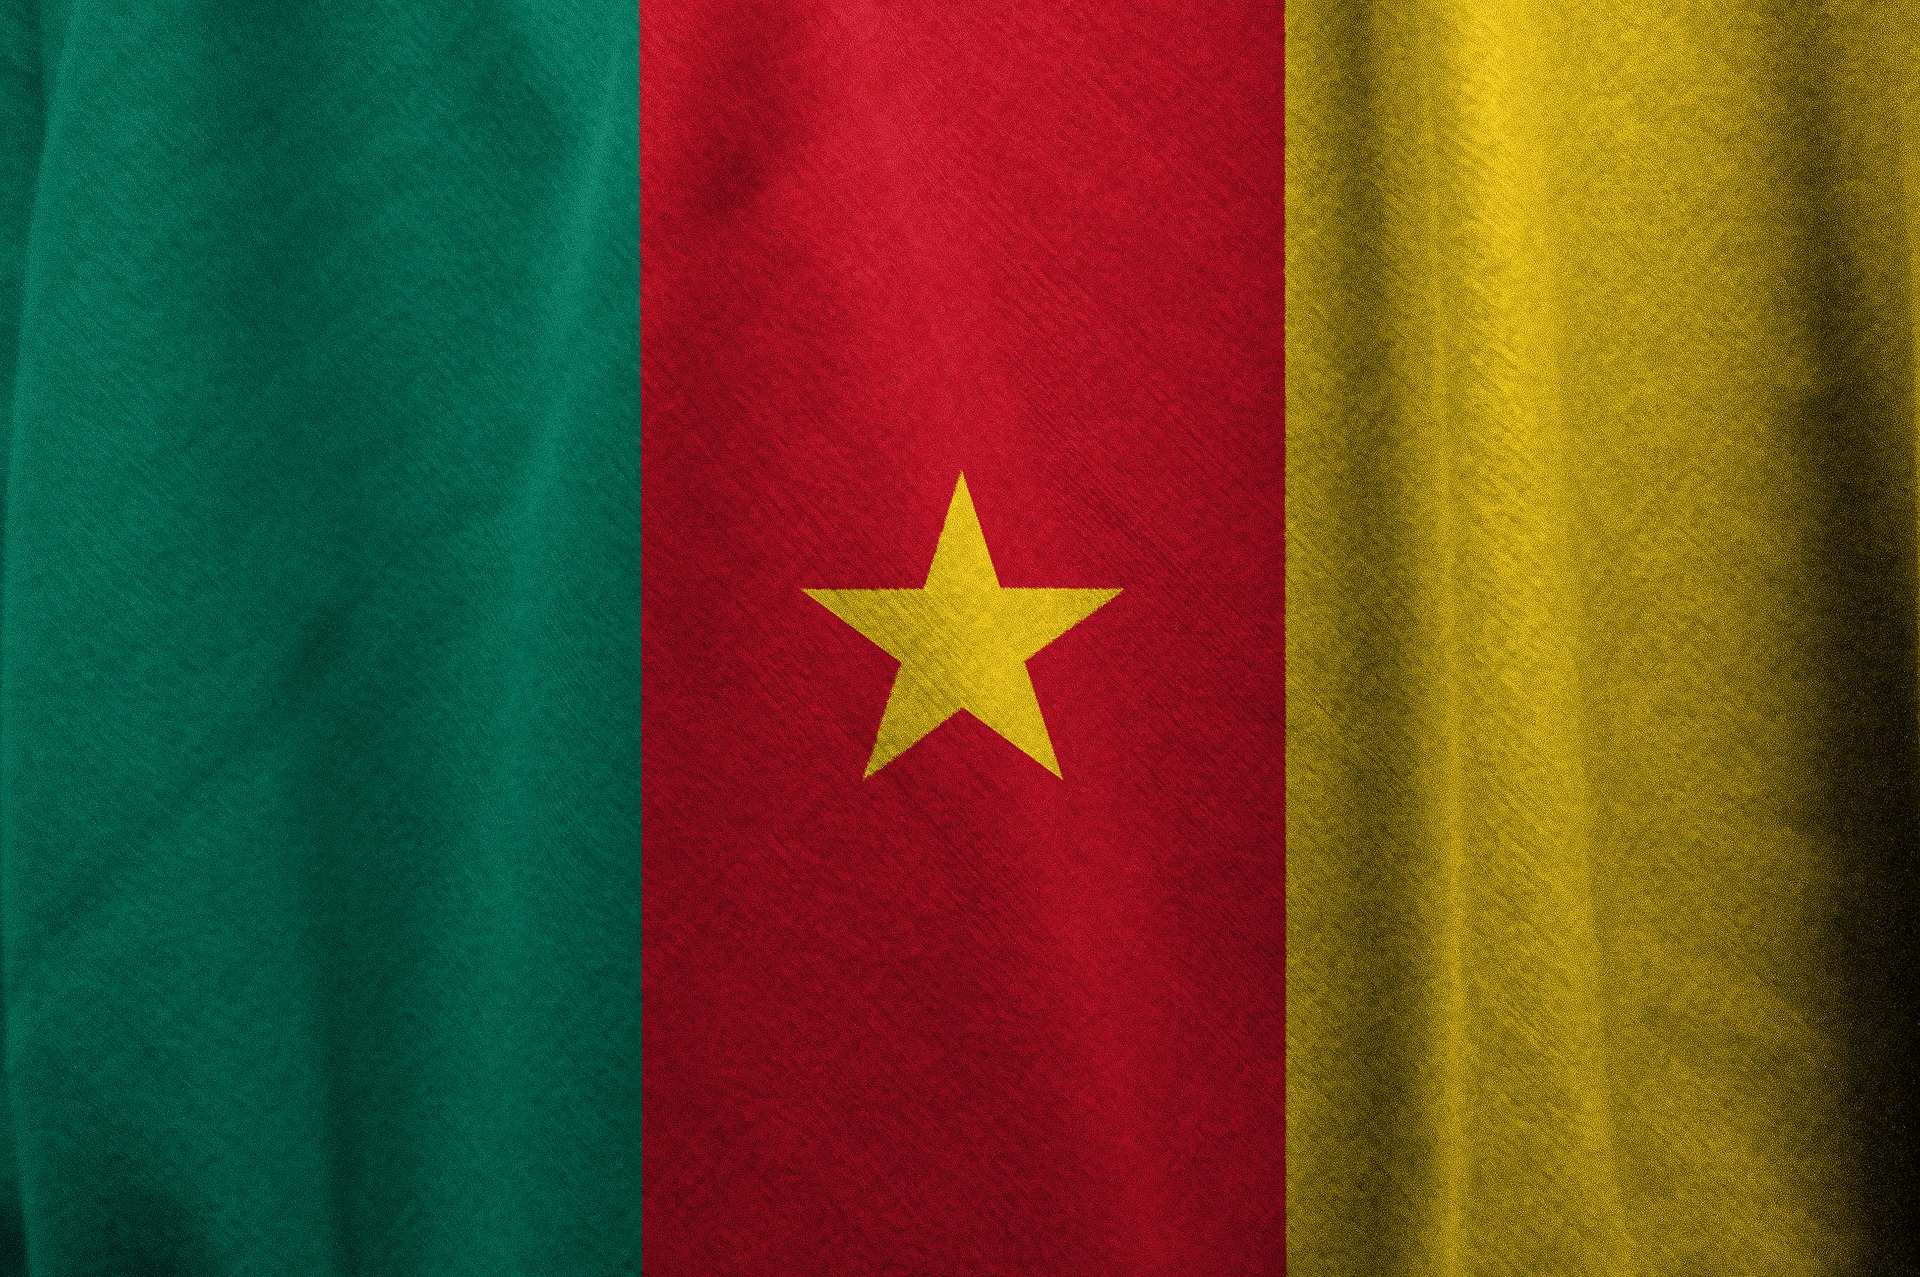 USC International Human Rights Clinic Condemns Recent Deportation of Cameroonian Refugees